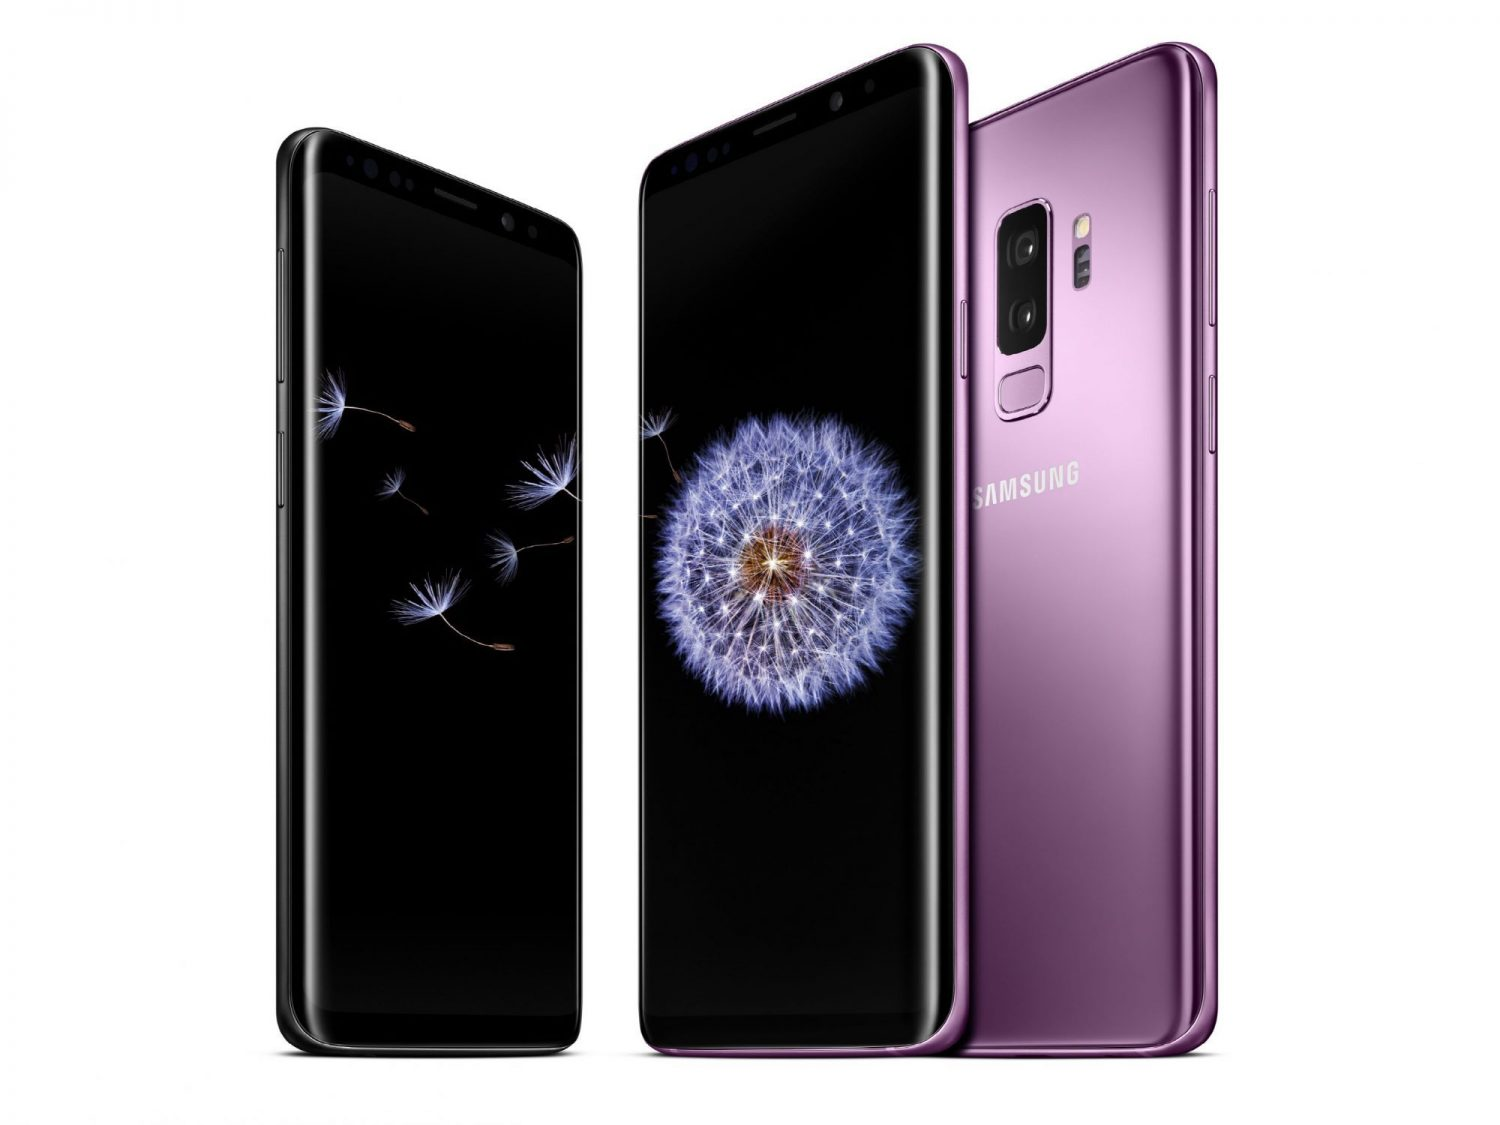 Samsung Galaxy S9 And S9 Instagram Worthy Features One